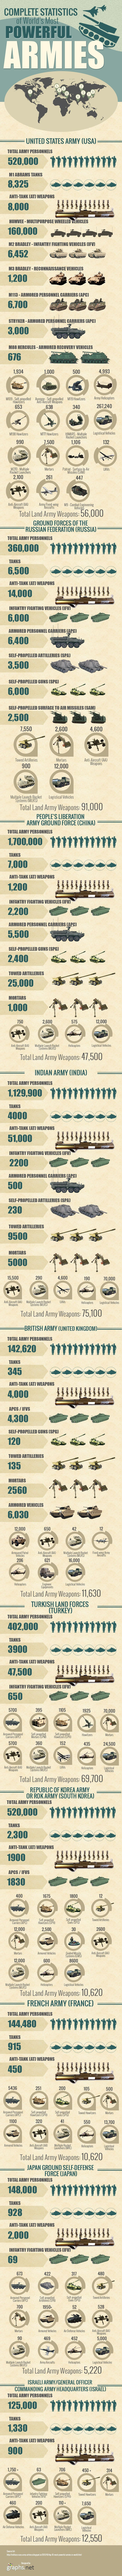 Armies plays an important role in protecting the world from security threats and risks. The following info graphic provides statistics of most powerf